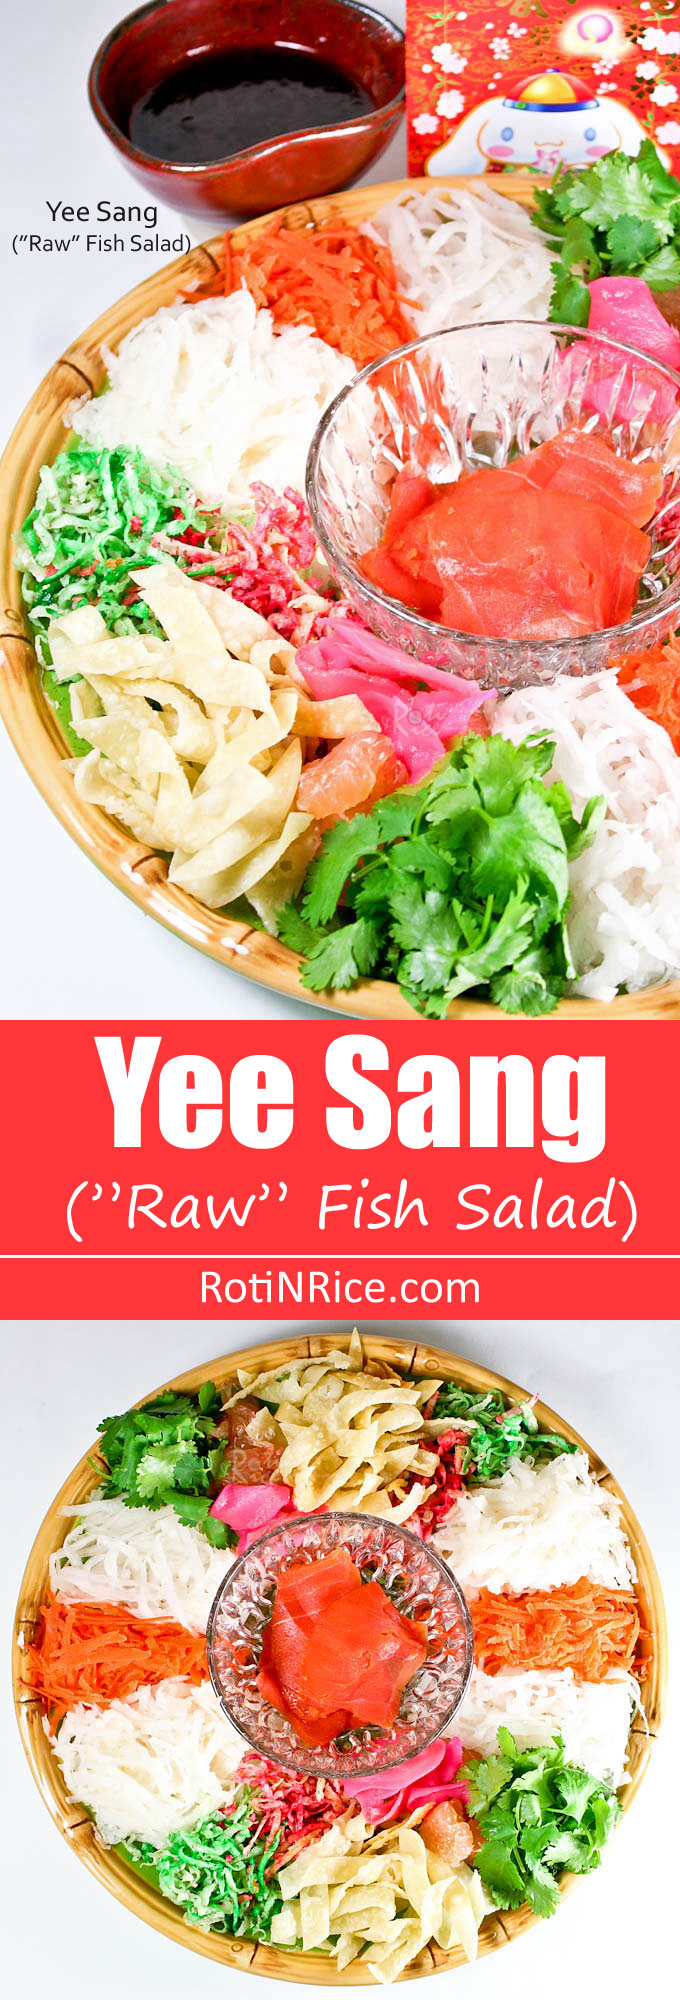 Yee Sang is a raw fish salad and a must-have for the Chinese New Year Feast. Make it at home using lox and a variety of crunchies and vegetables. | RotiNRice.com